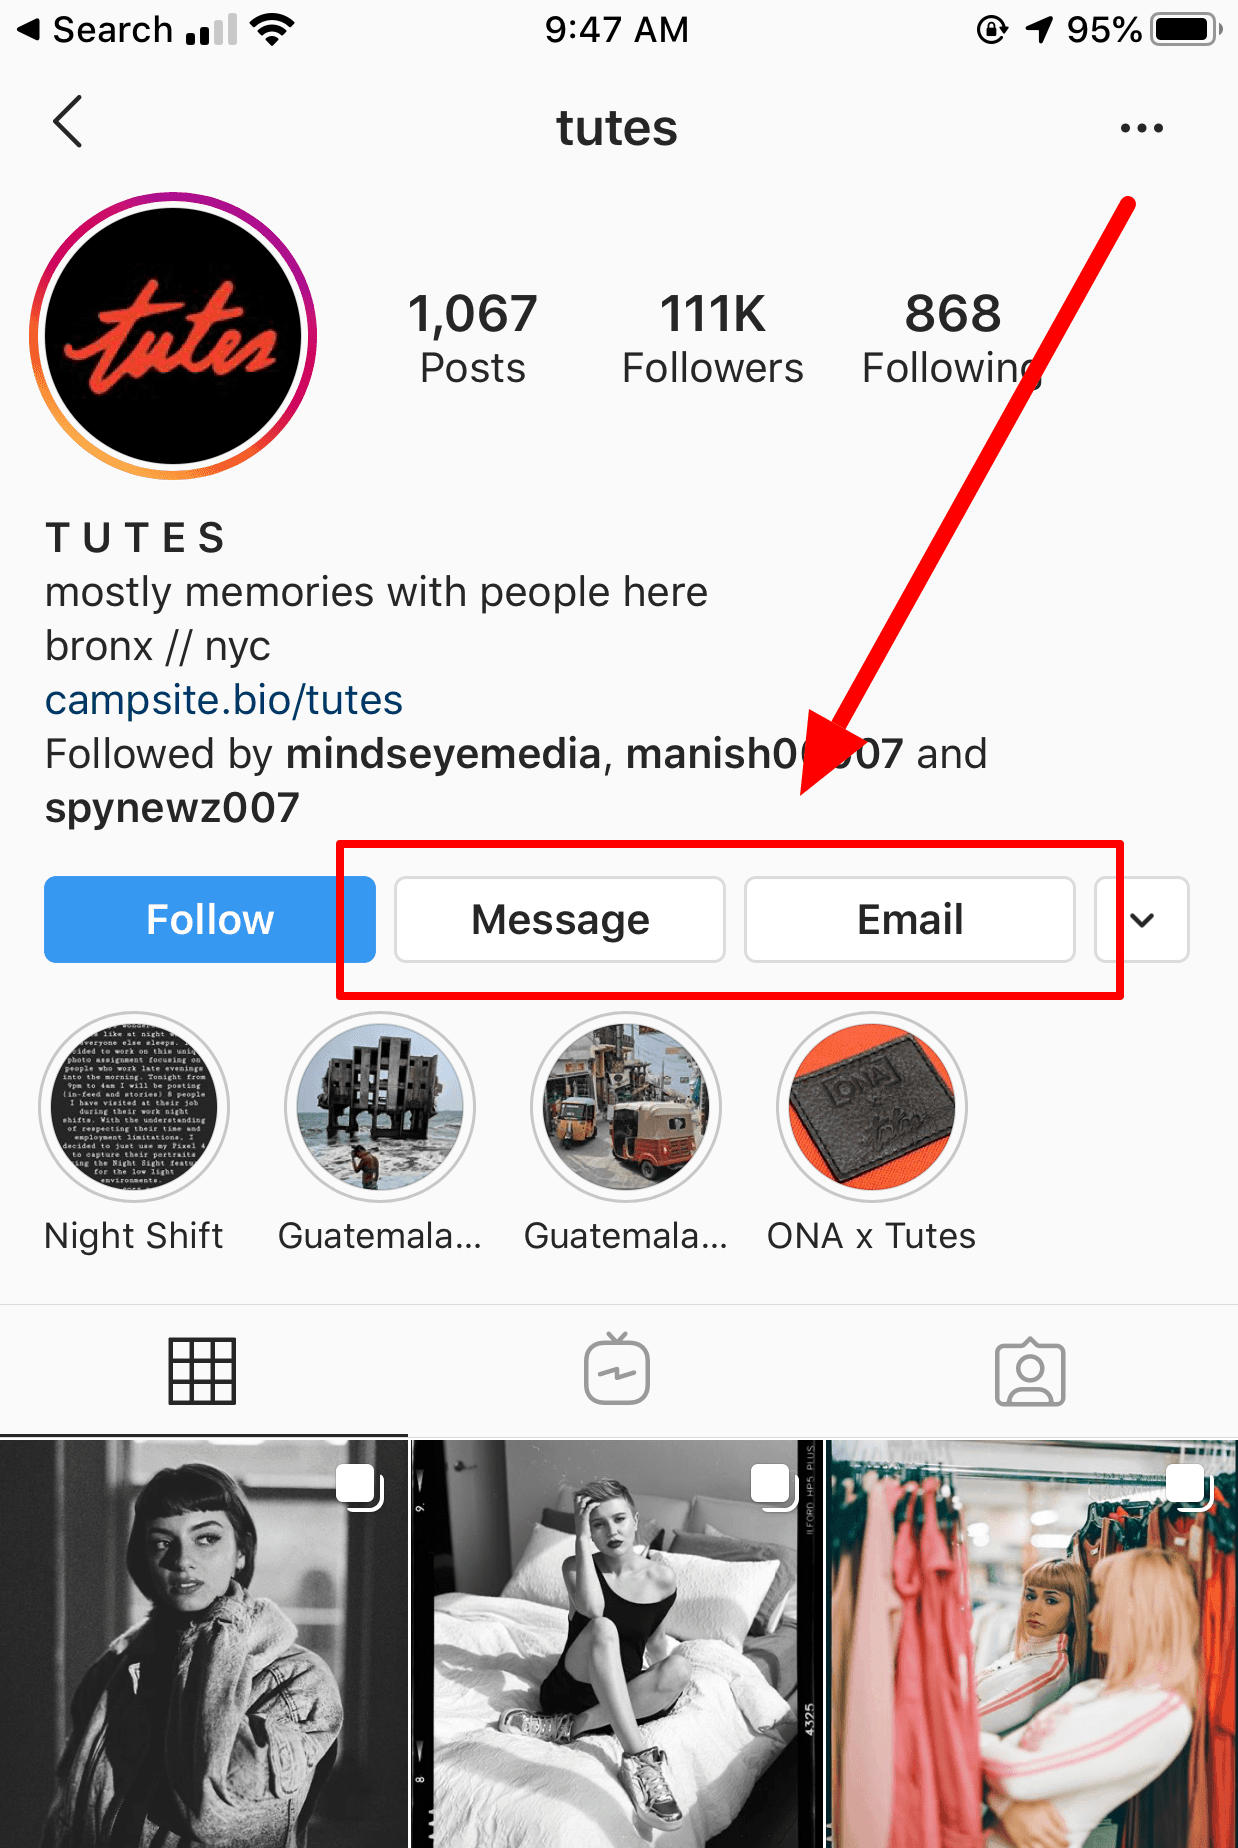 Screenshot of Message and Email features on Instagram Profile